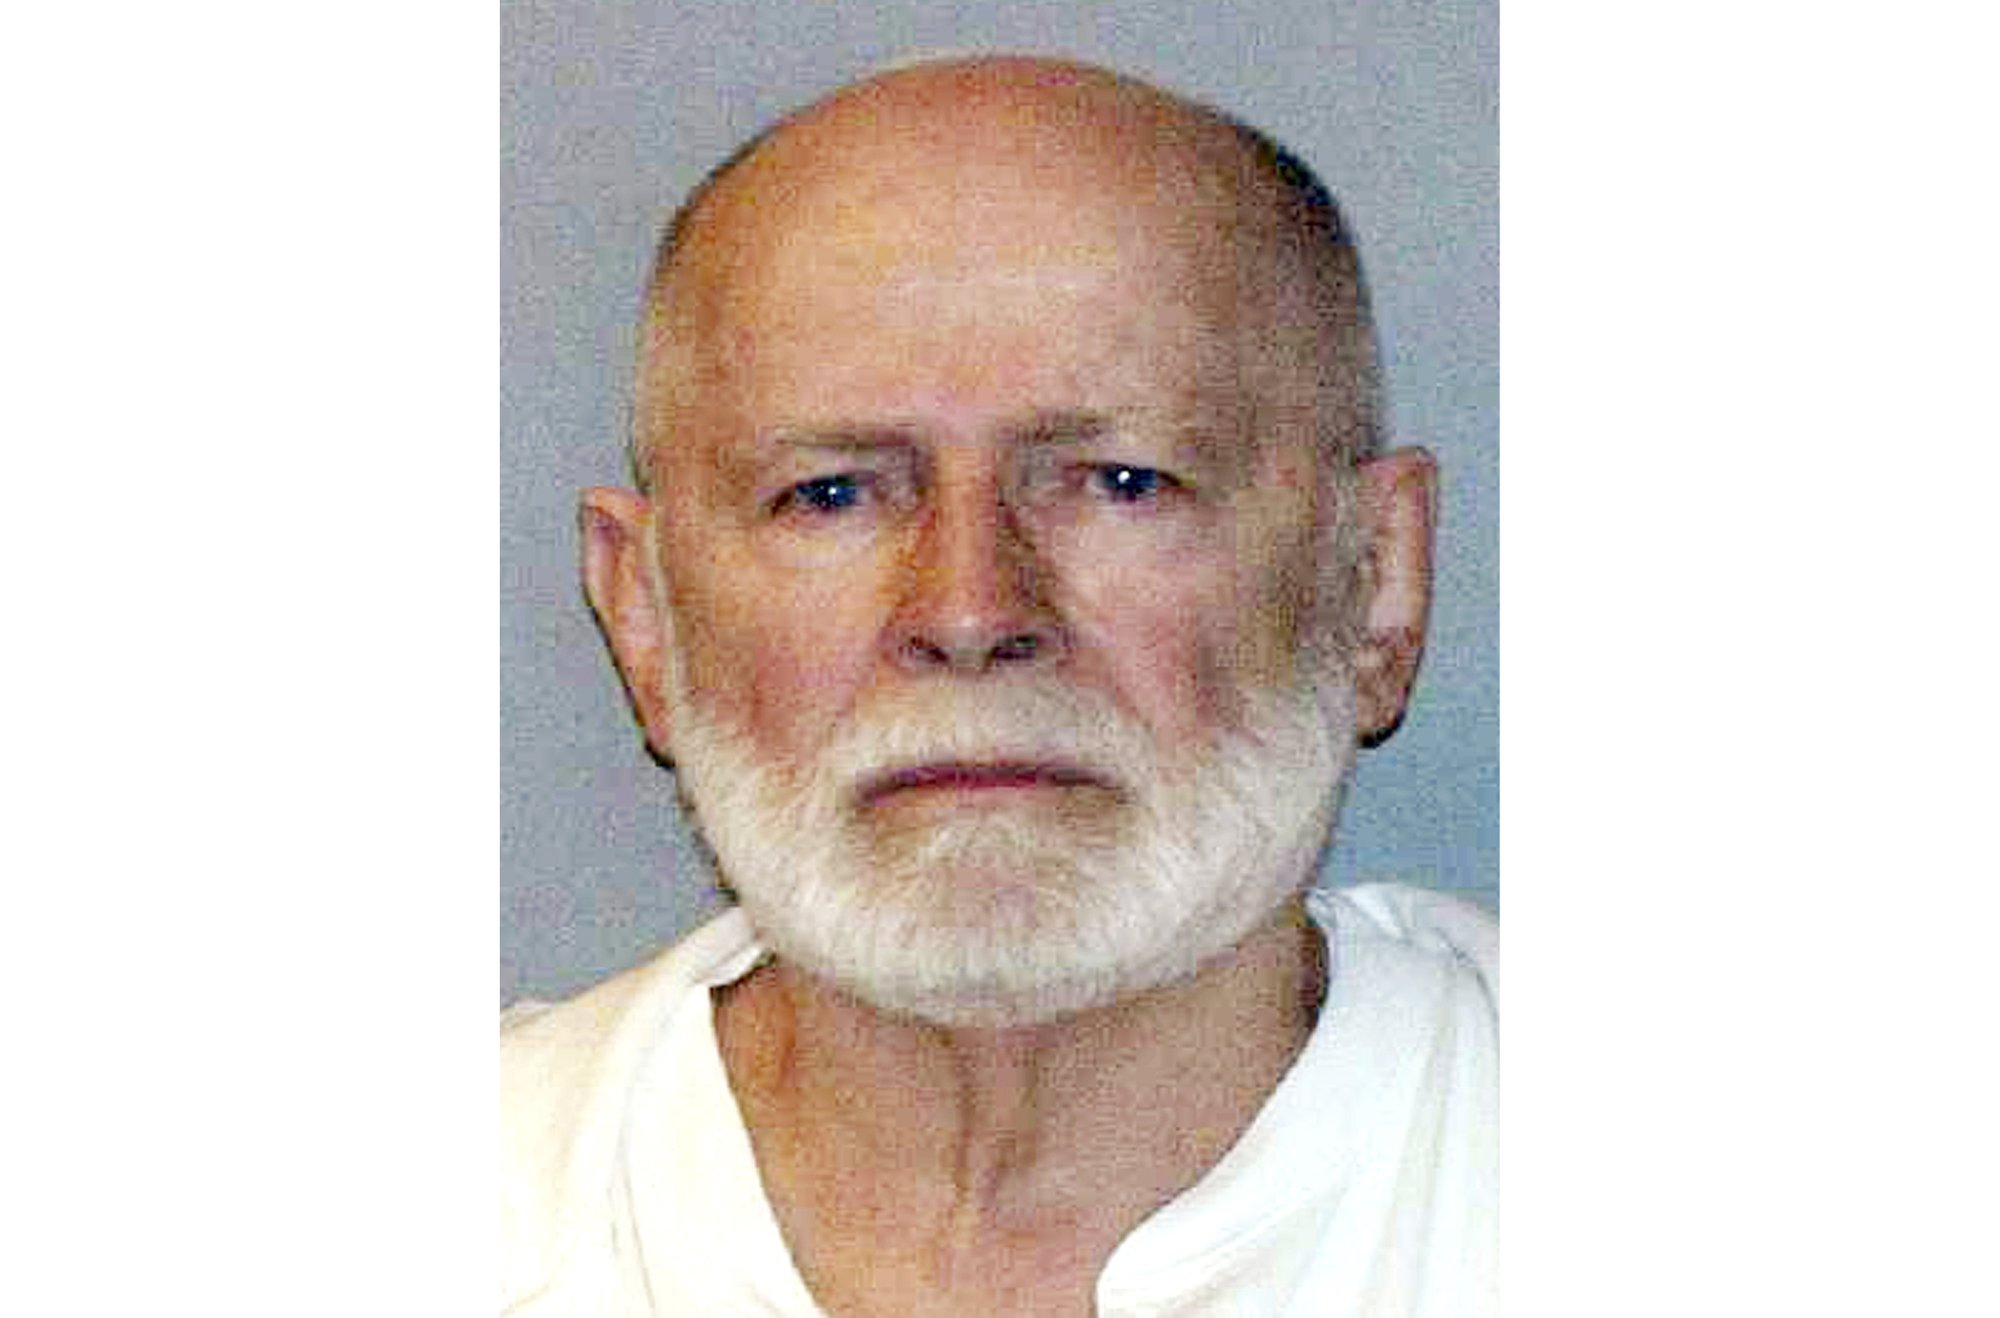 Official: Mafia hit man suspected in Whitey Bulger's slaying